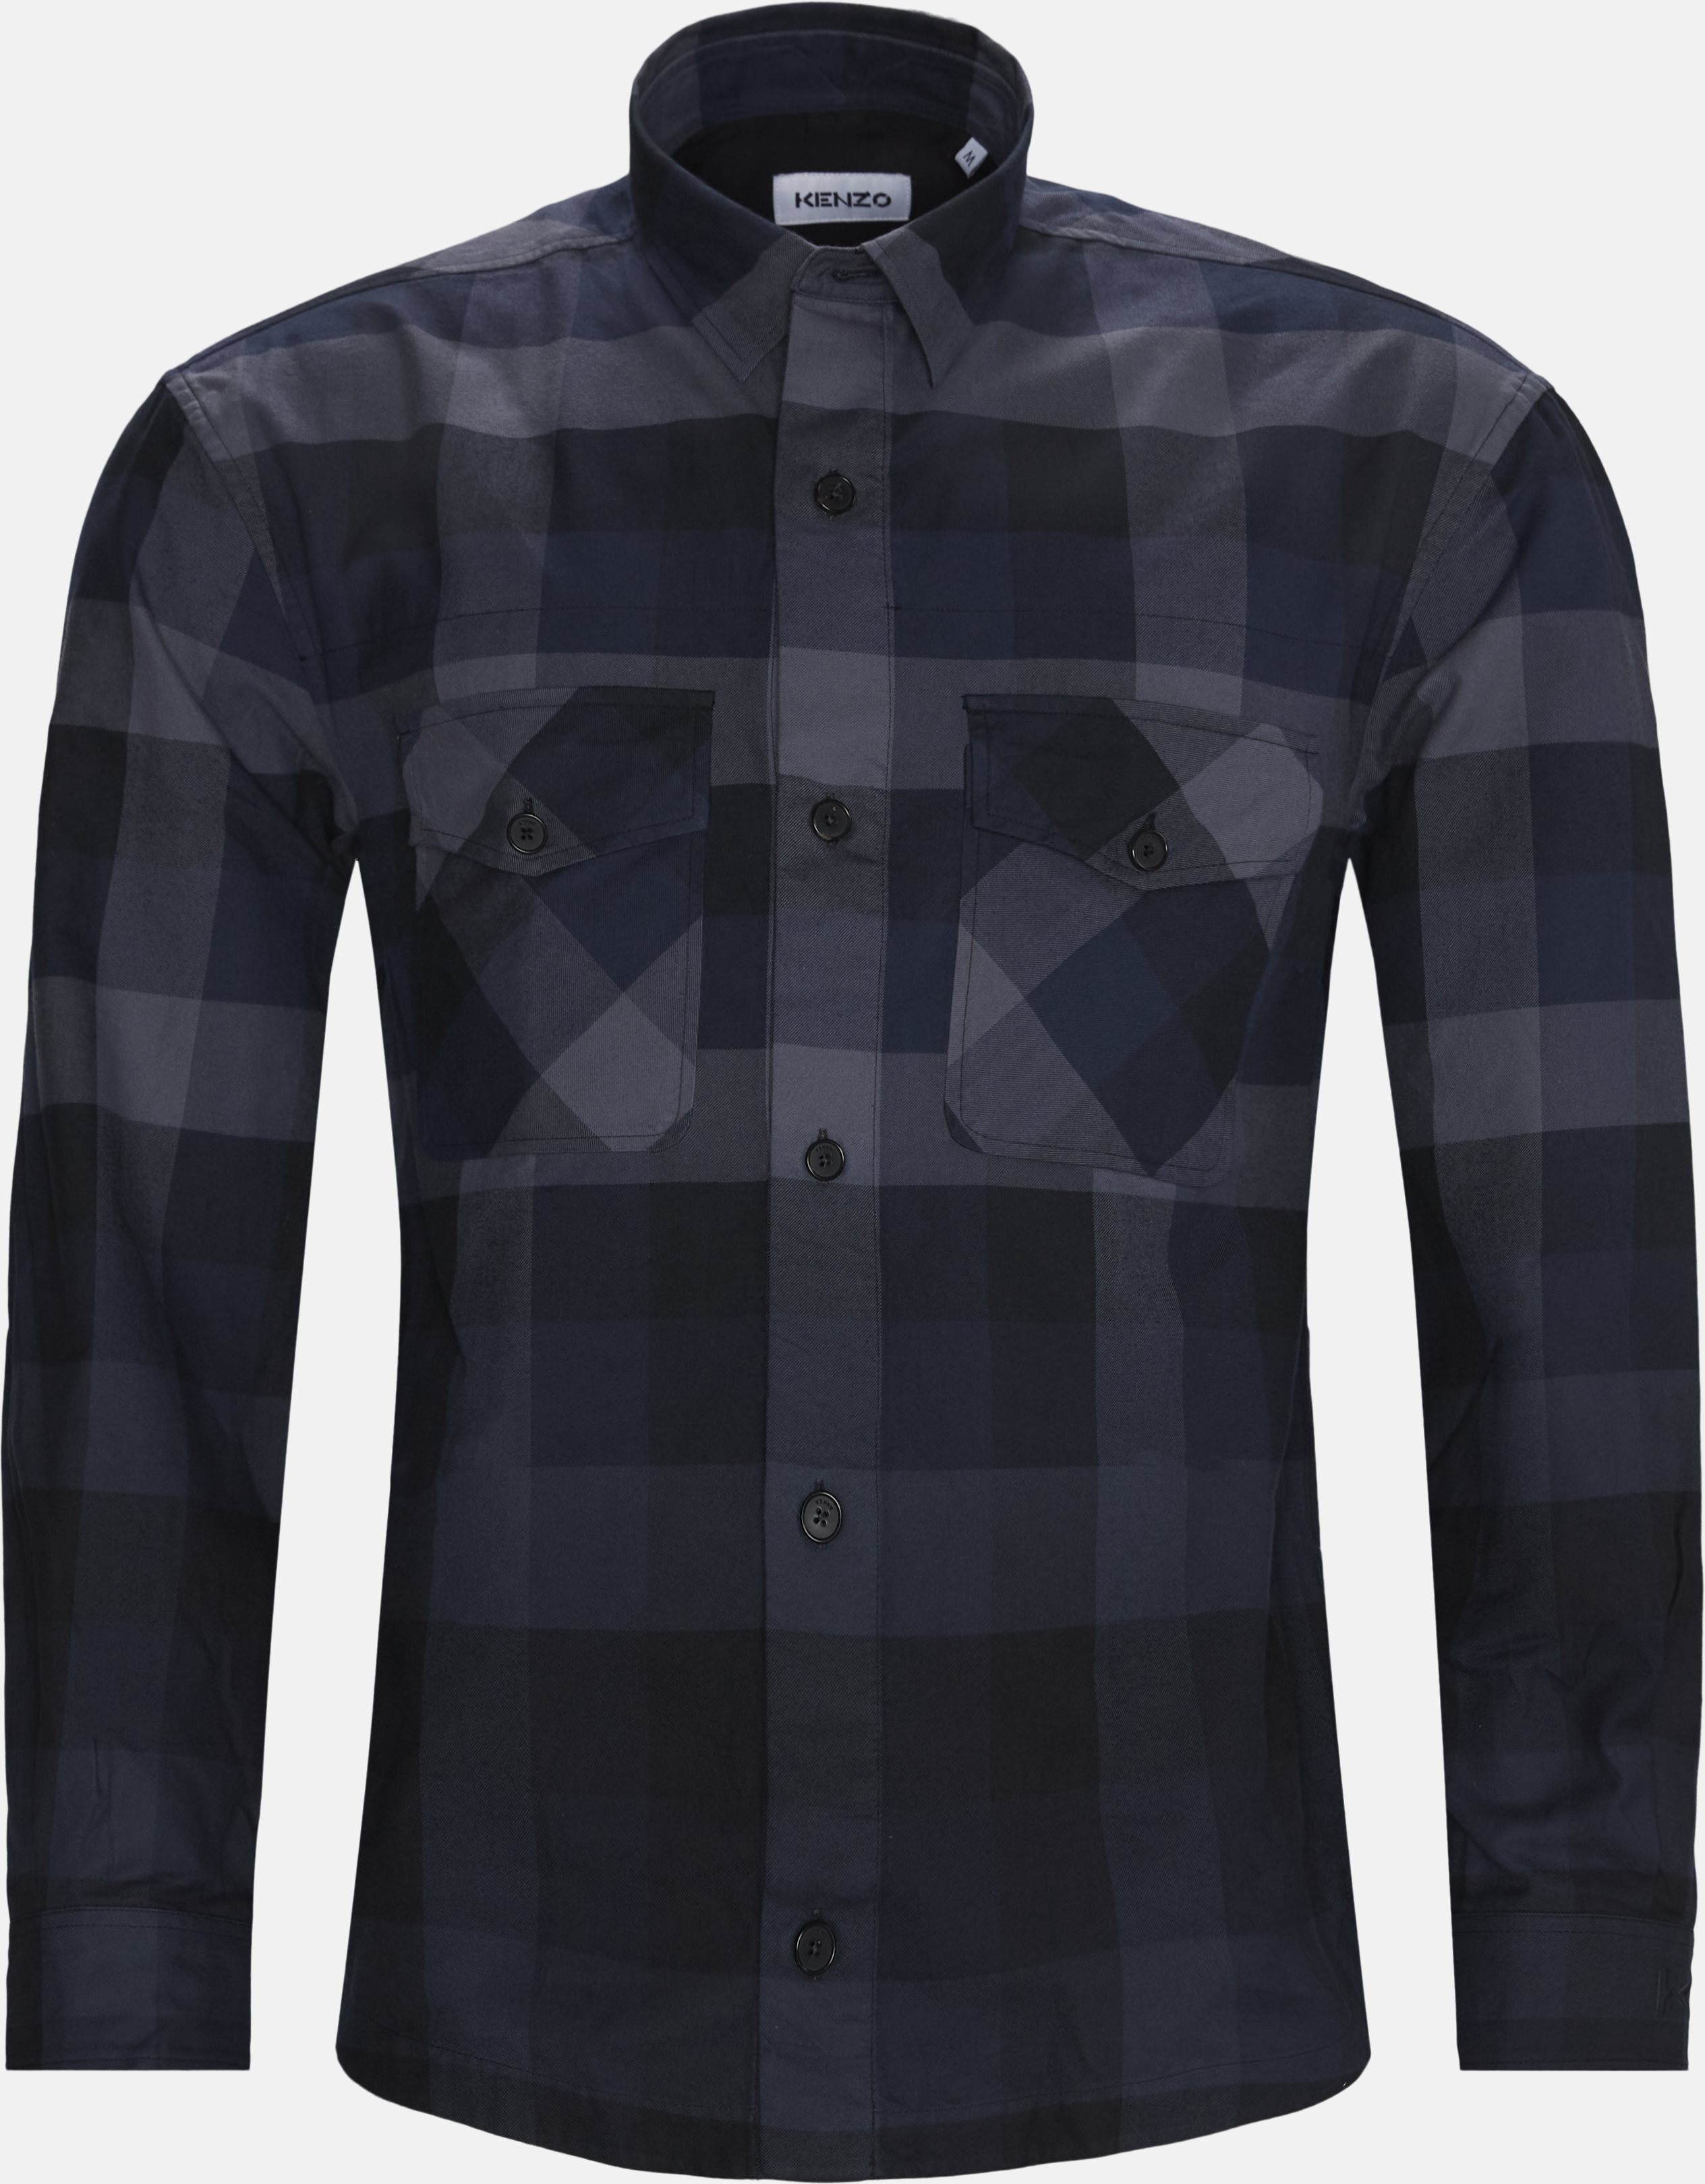 Shirts - Regular - Multi